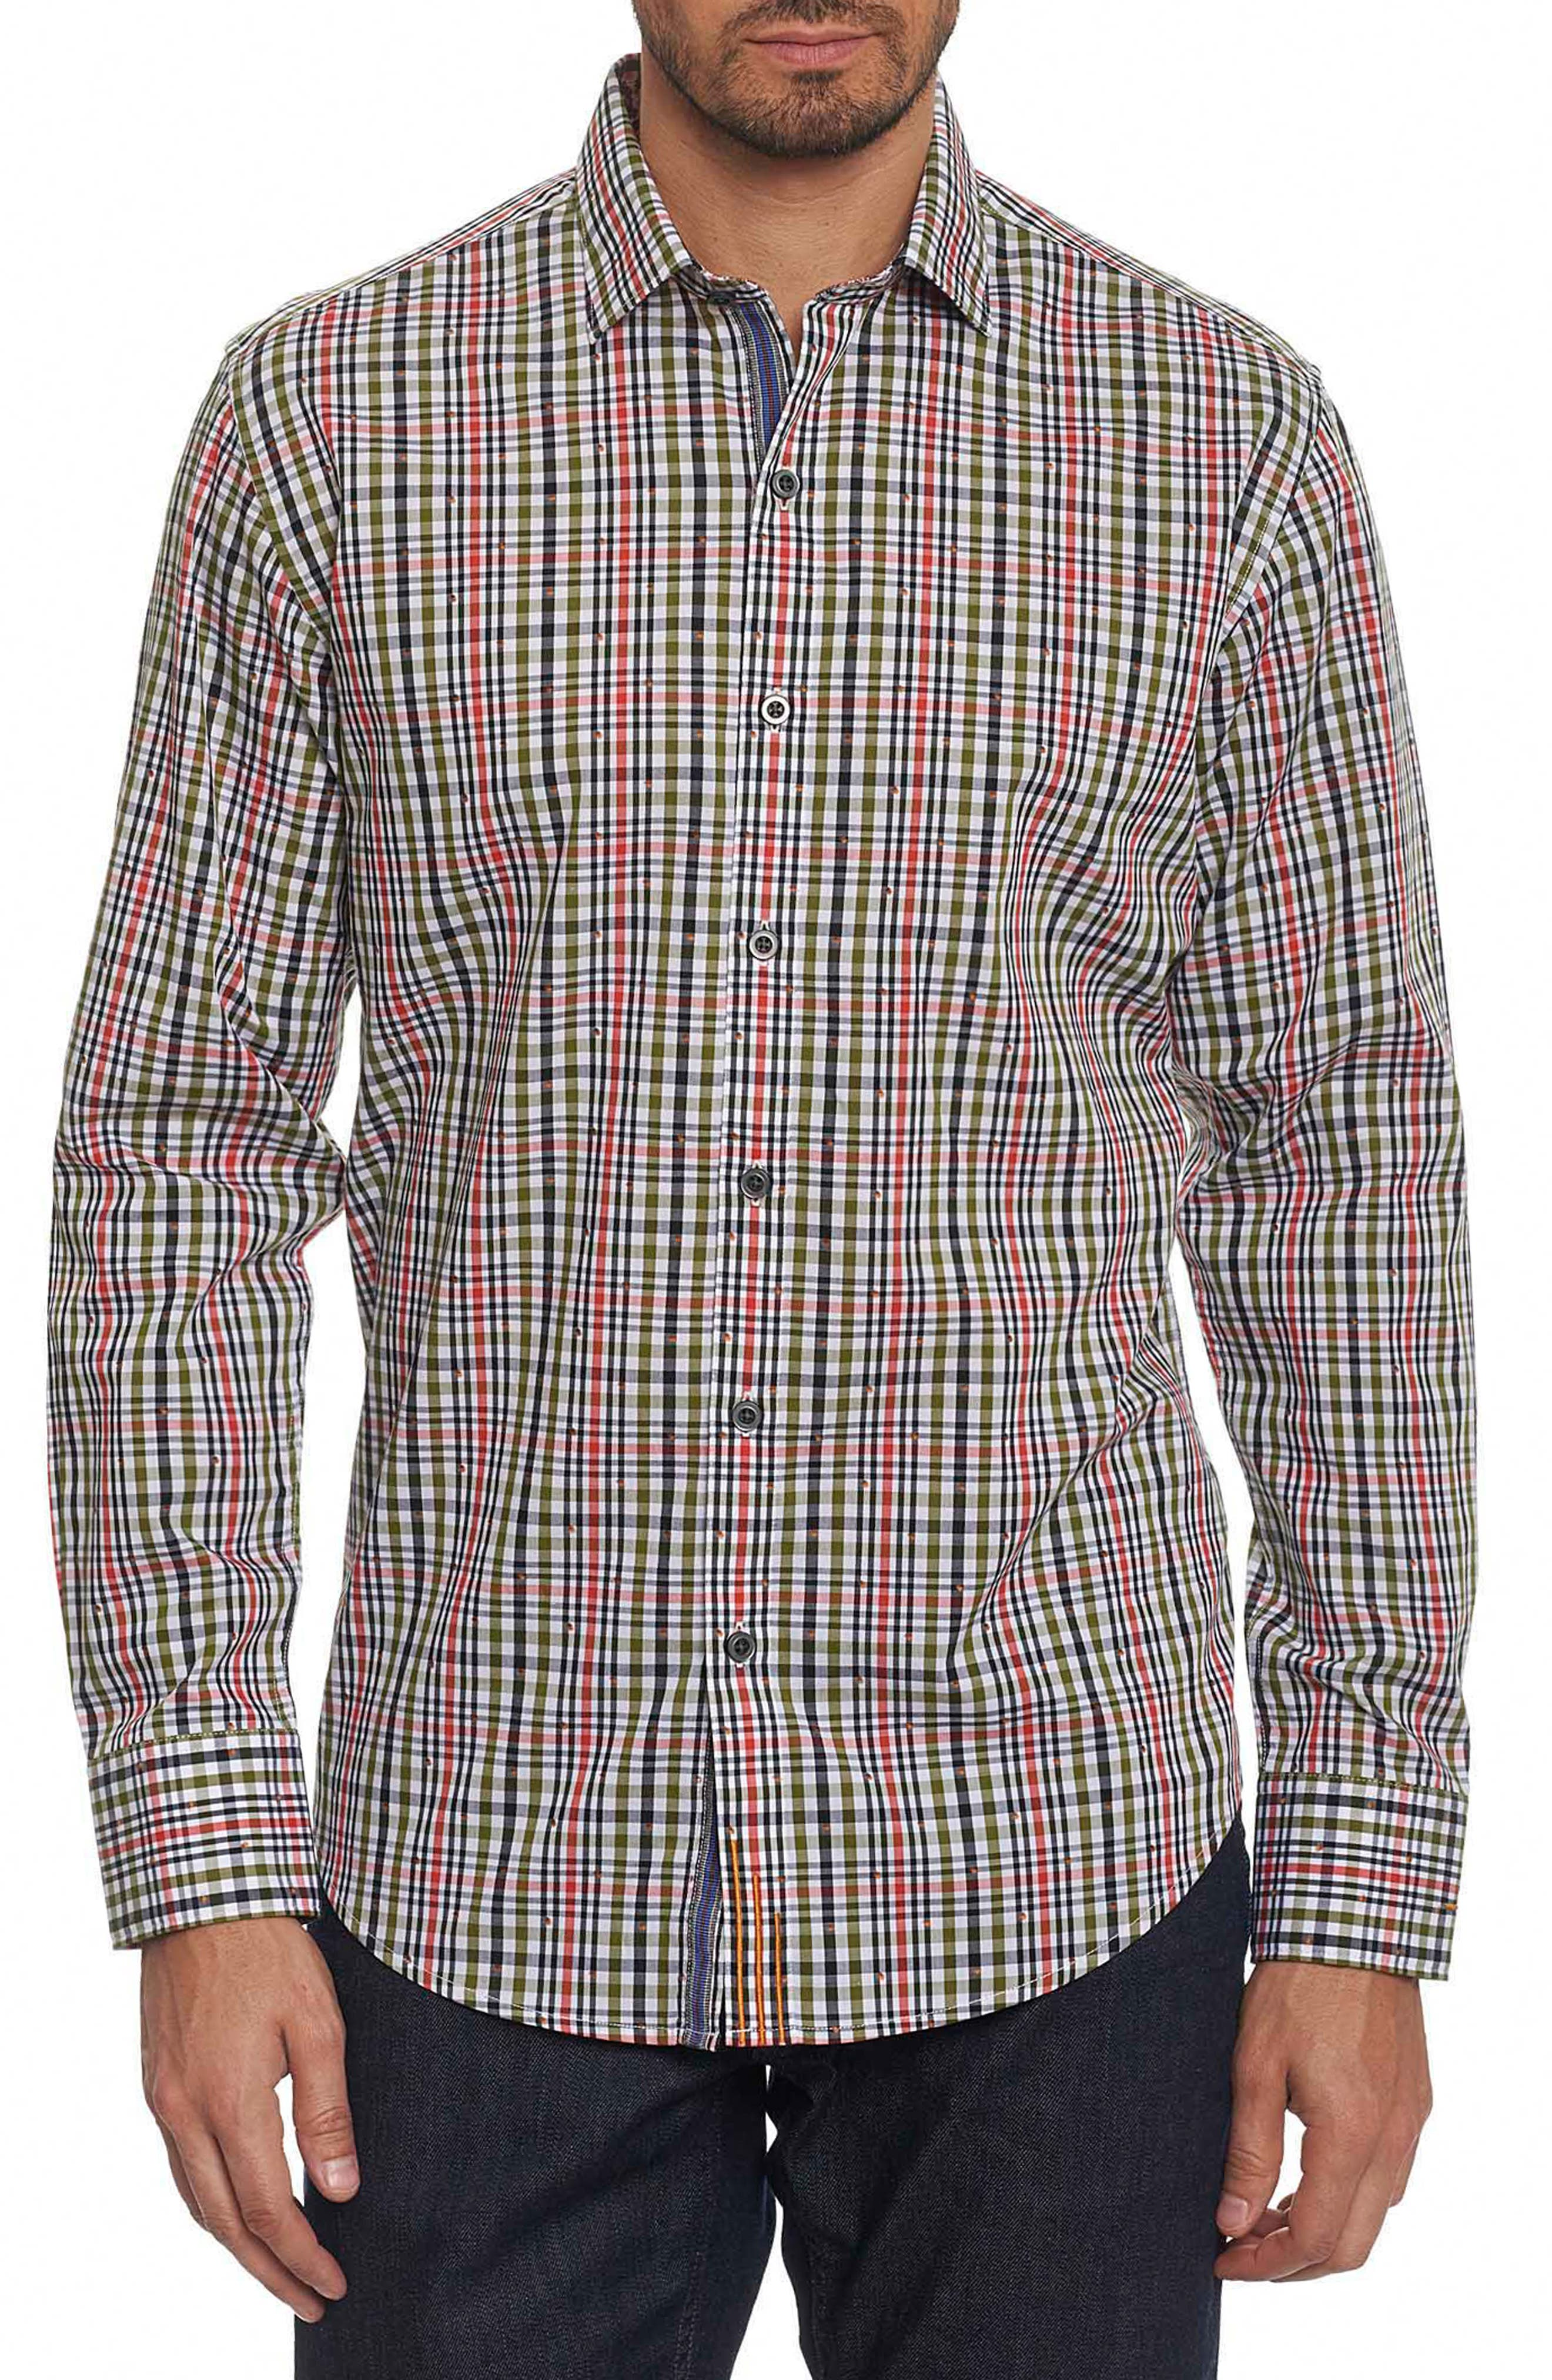 Cape Vincent Classic Fit Dobby Check Sport Shirt,                         Main,                         color, Olive